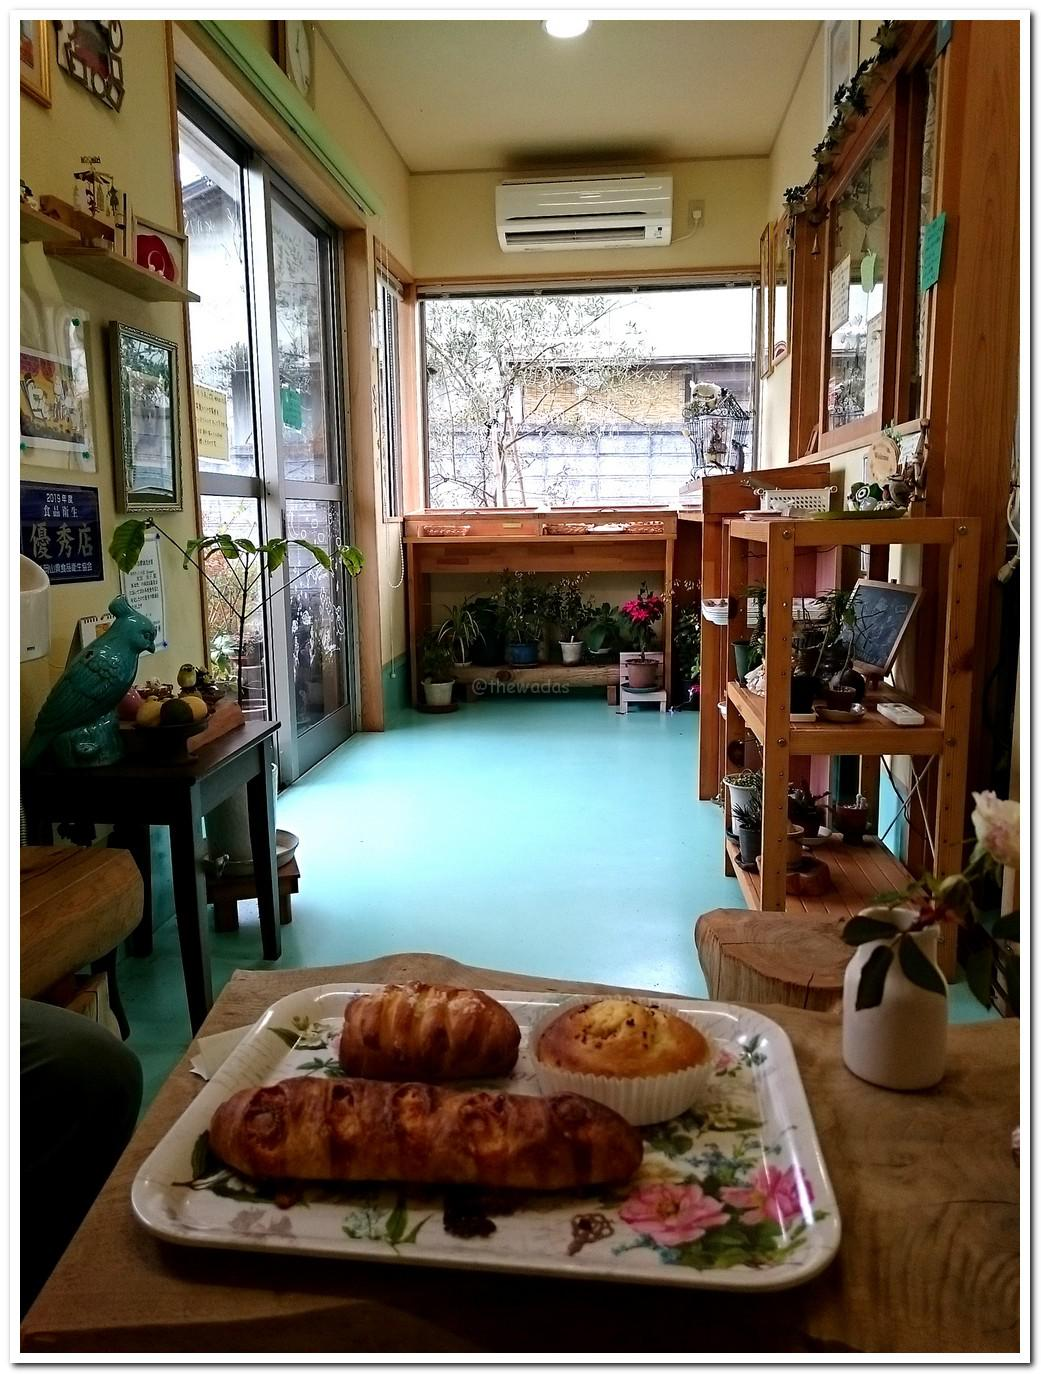 Tiny Bakery in Bizen City:  Rosemary